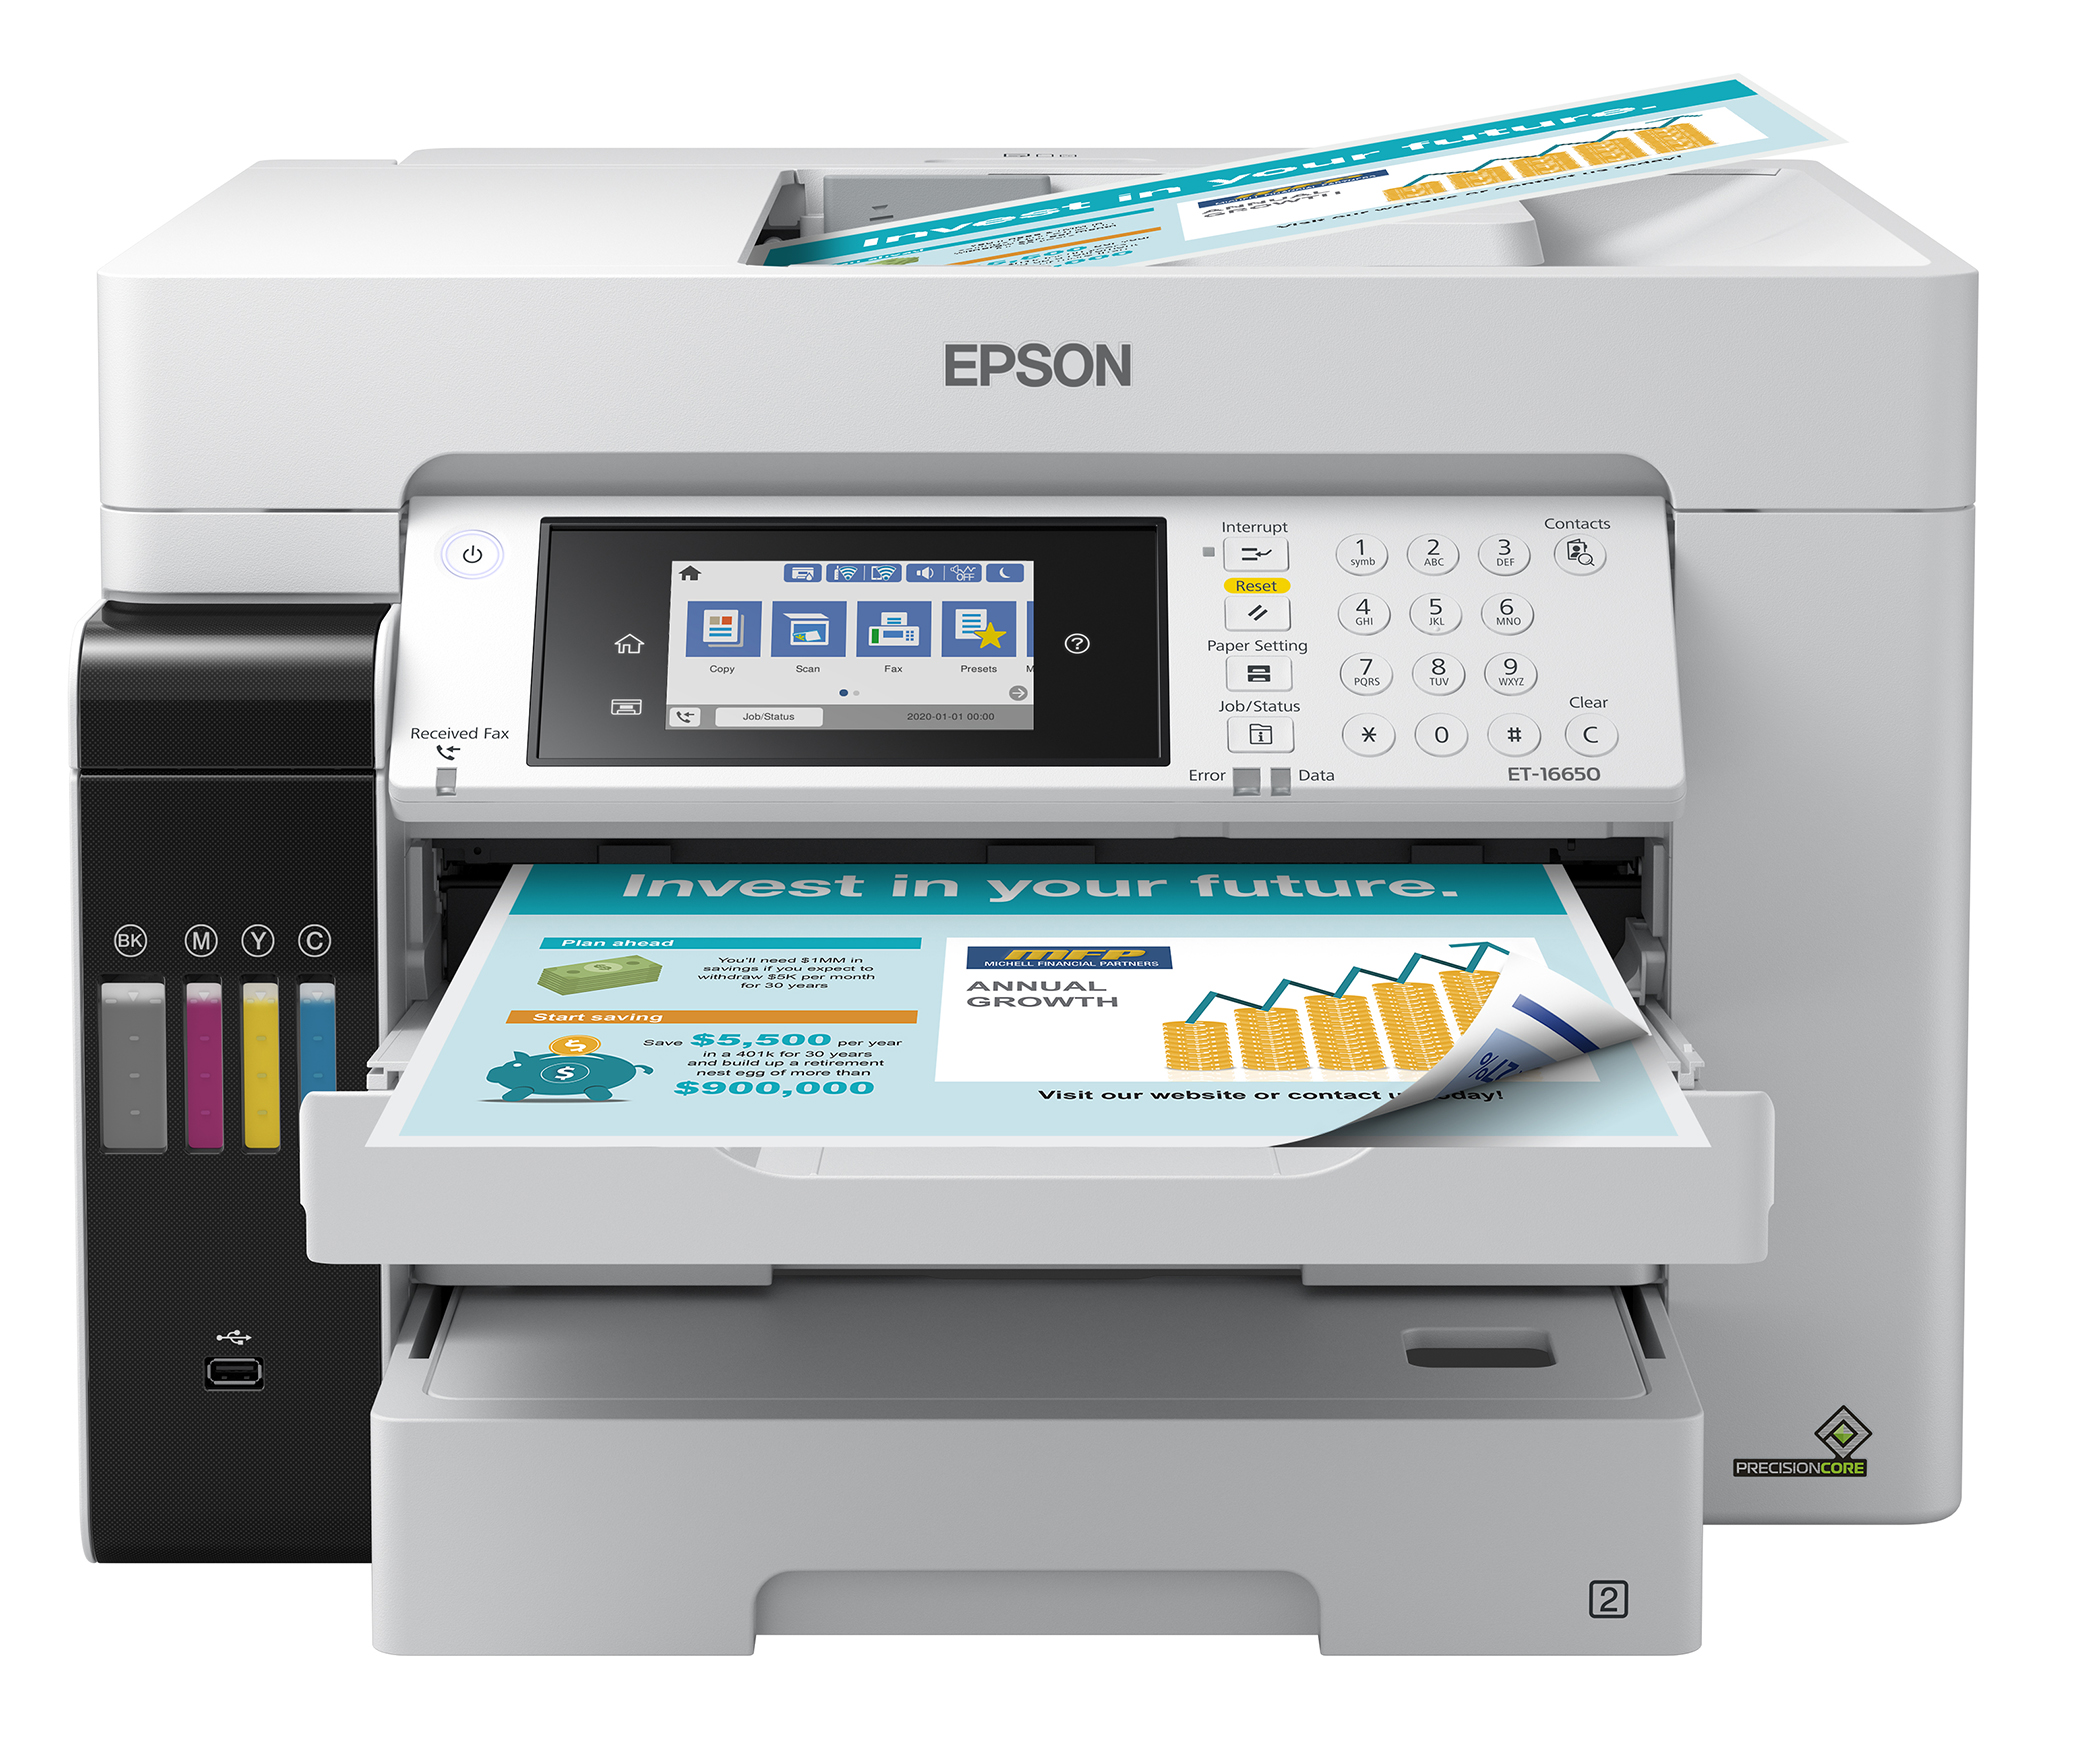 The EcoTank Pro ET-16650 wireless all-in-one printer offers fast cartridge-free printing with easy-to-fill supersized ink tanks, designed for reliable, cost-effective and feature-rich printing up to 13